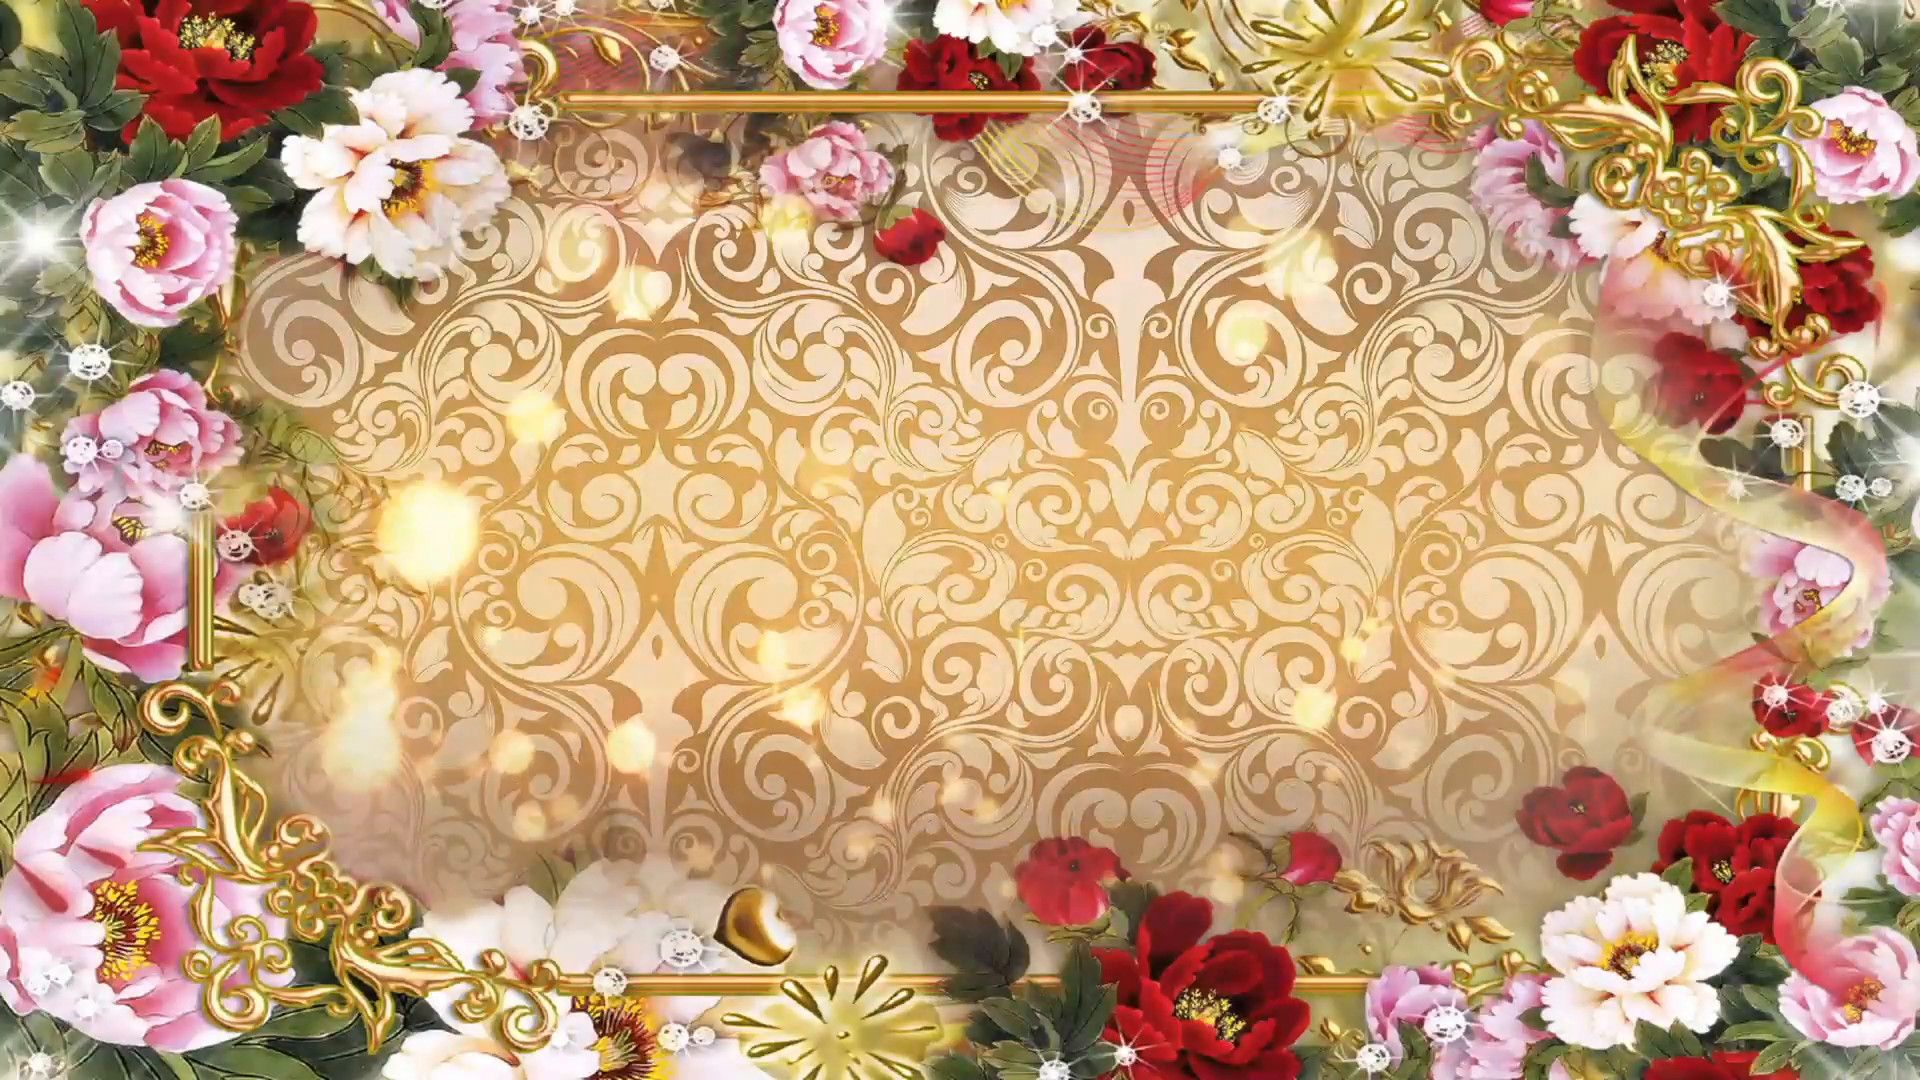 1920x1080 Multicolored Flowers Abstract Wedding Background 06 Stock Video Footage Videobl Wedding Background Wedding Background Images Wedding Videographer